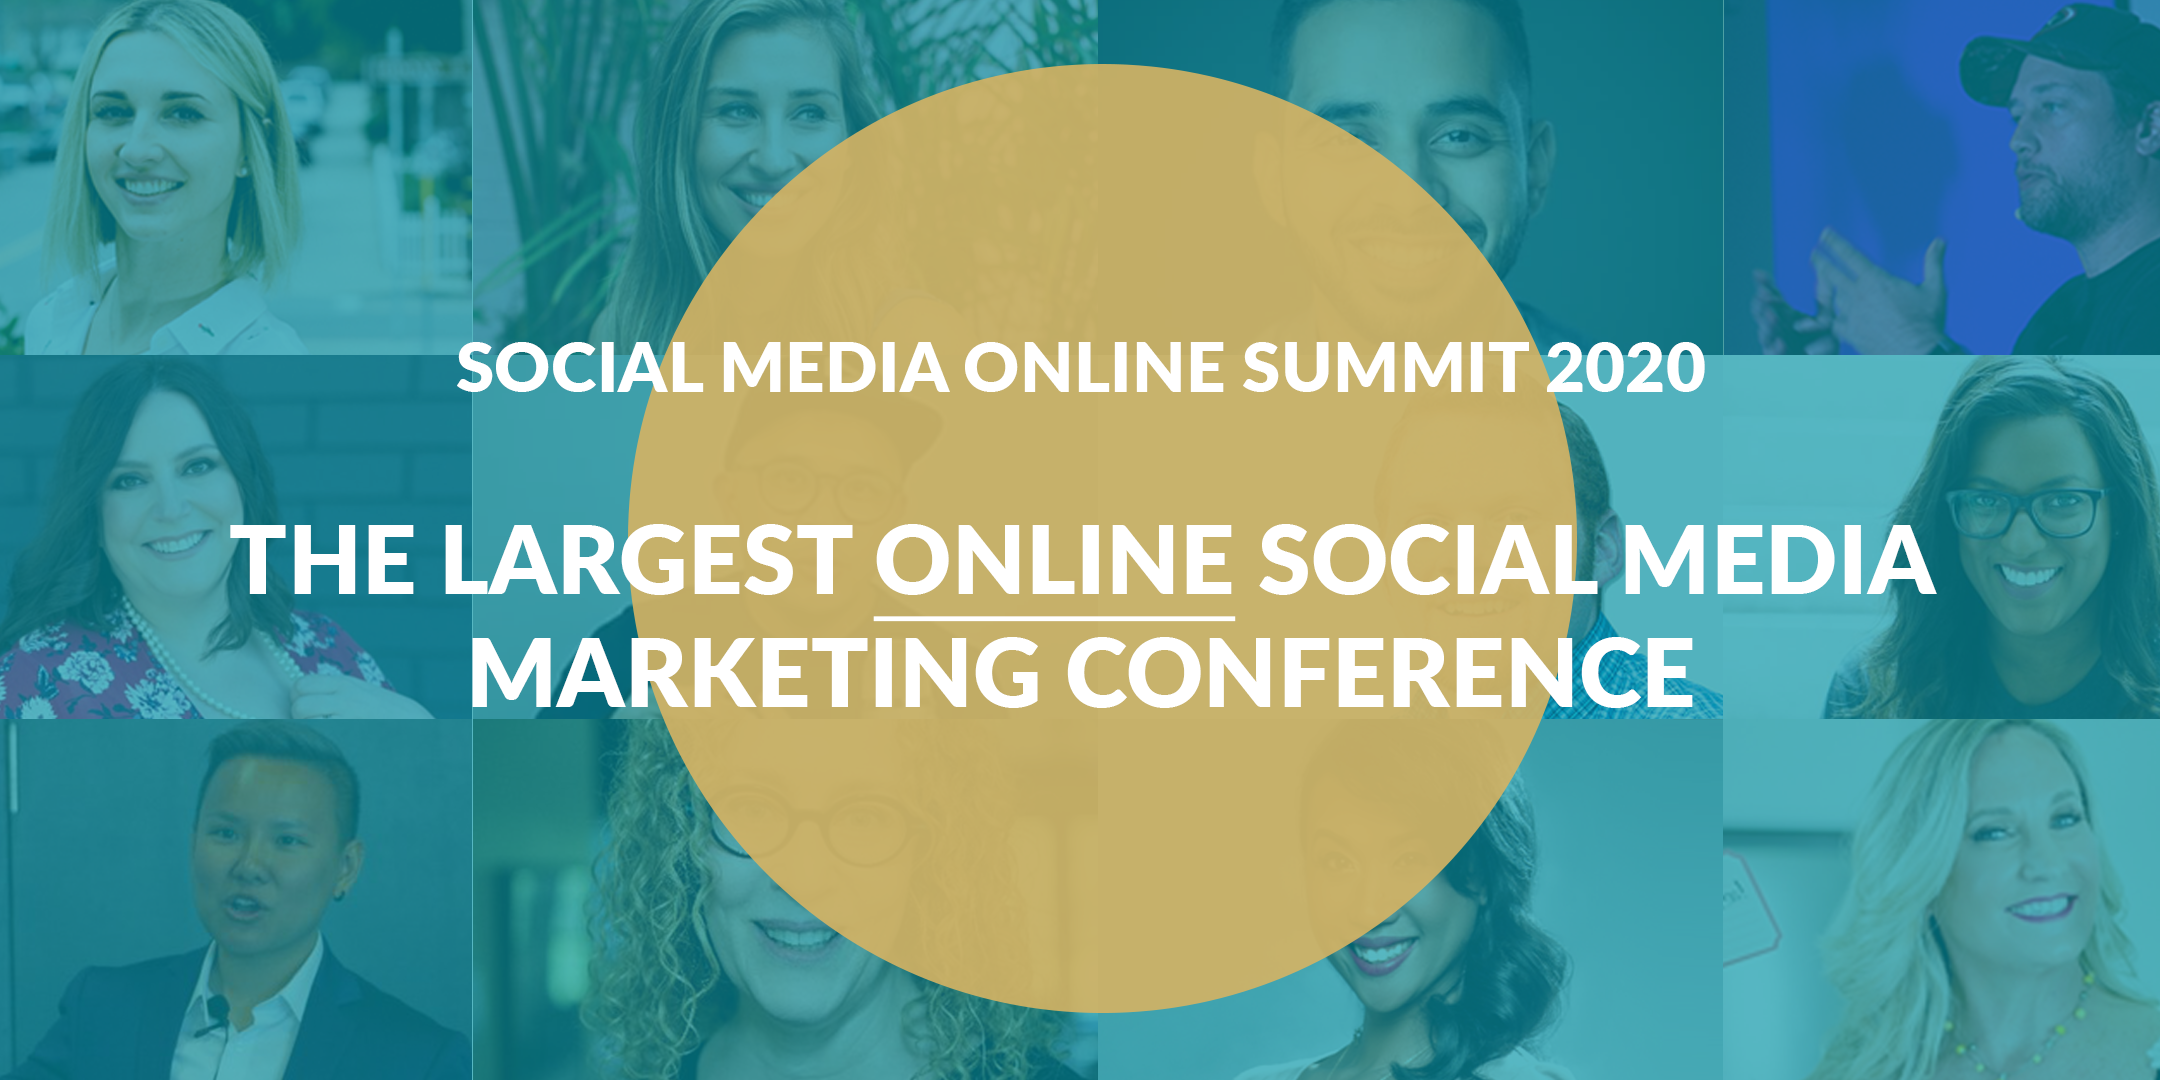 Social Media Online Summit 2020 (Online Conference)